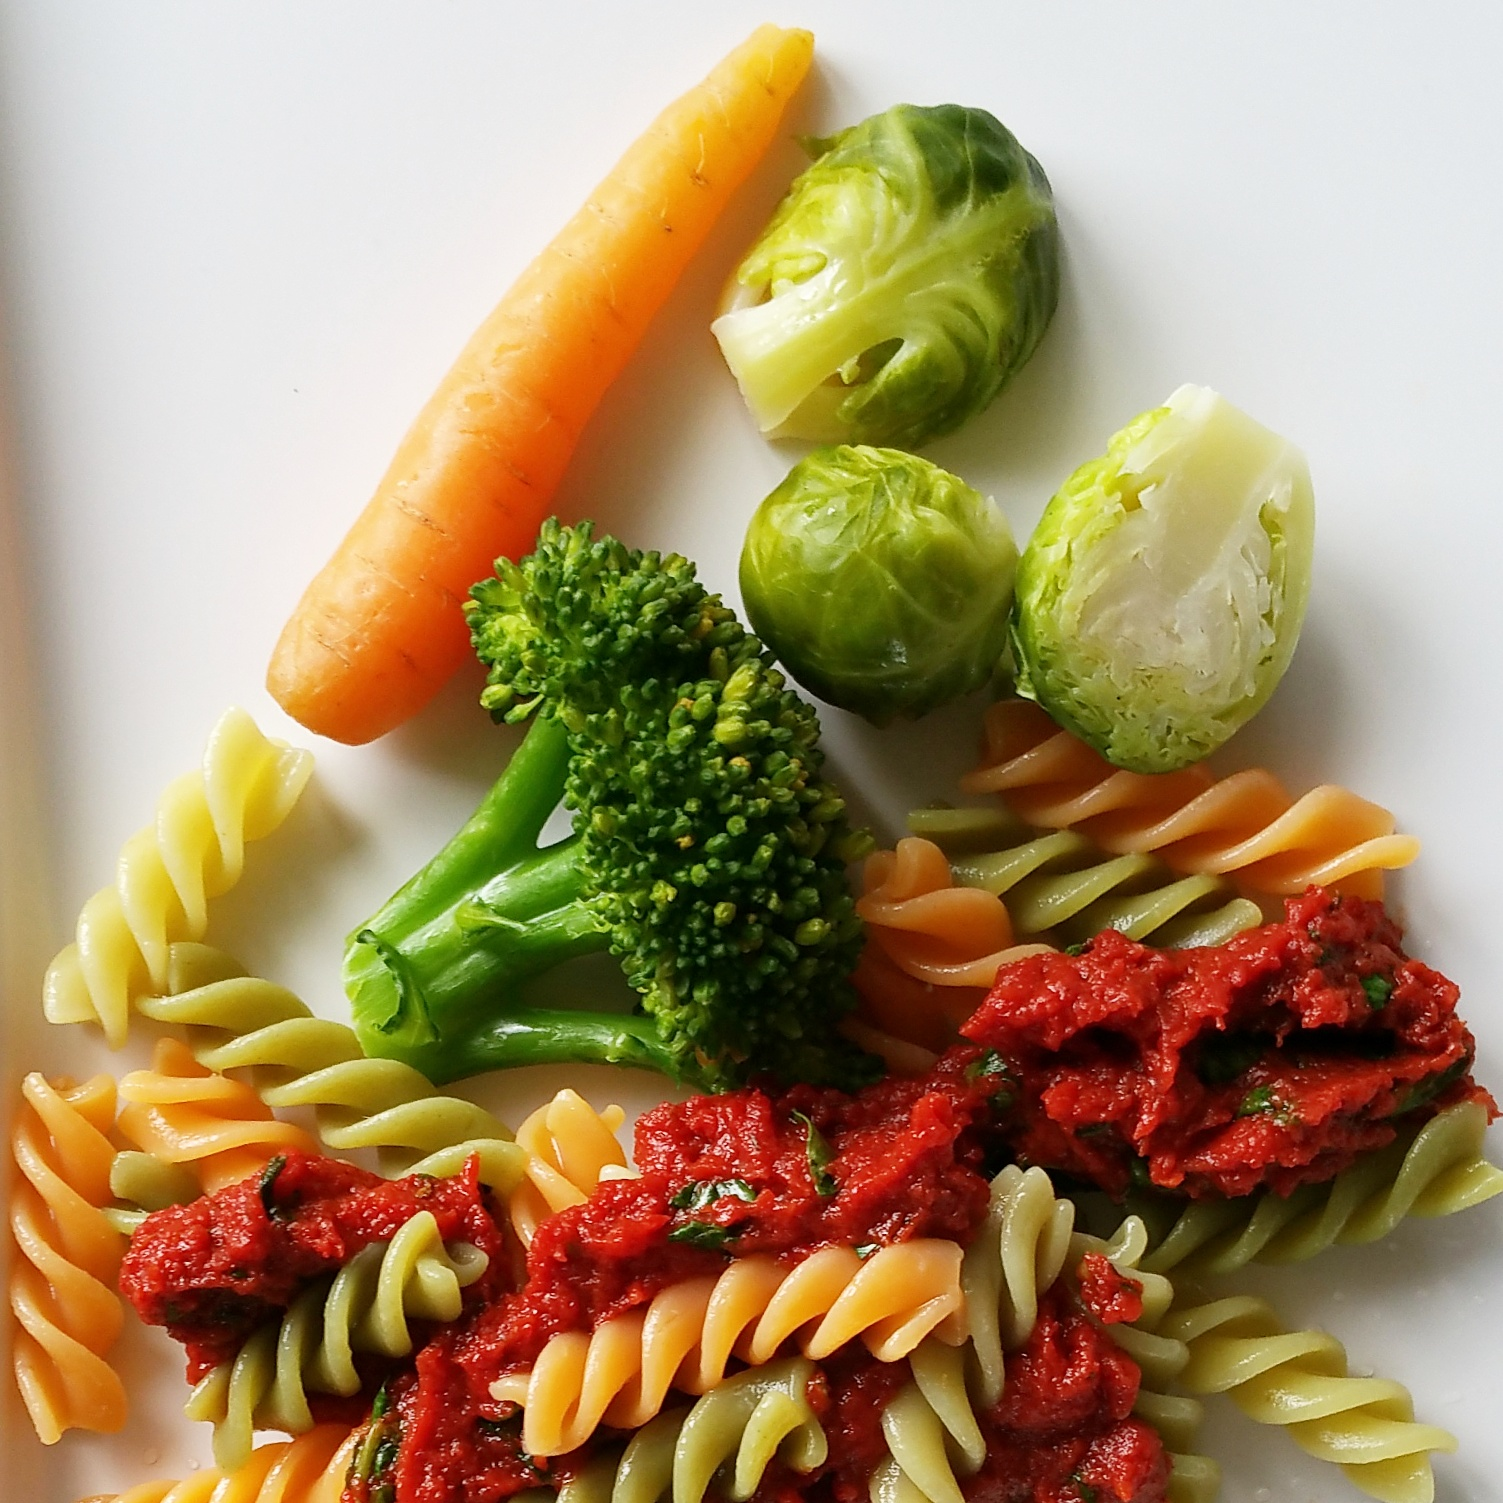 fusilli with tomato and spinach sauce, broccoli, brussel sprouts, carrot